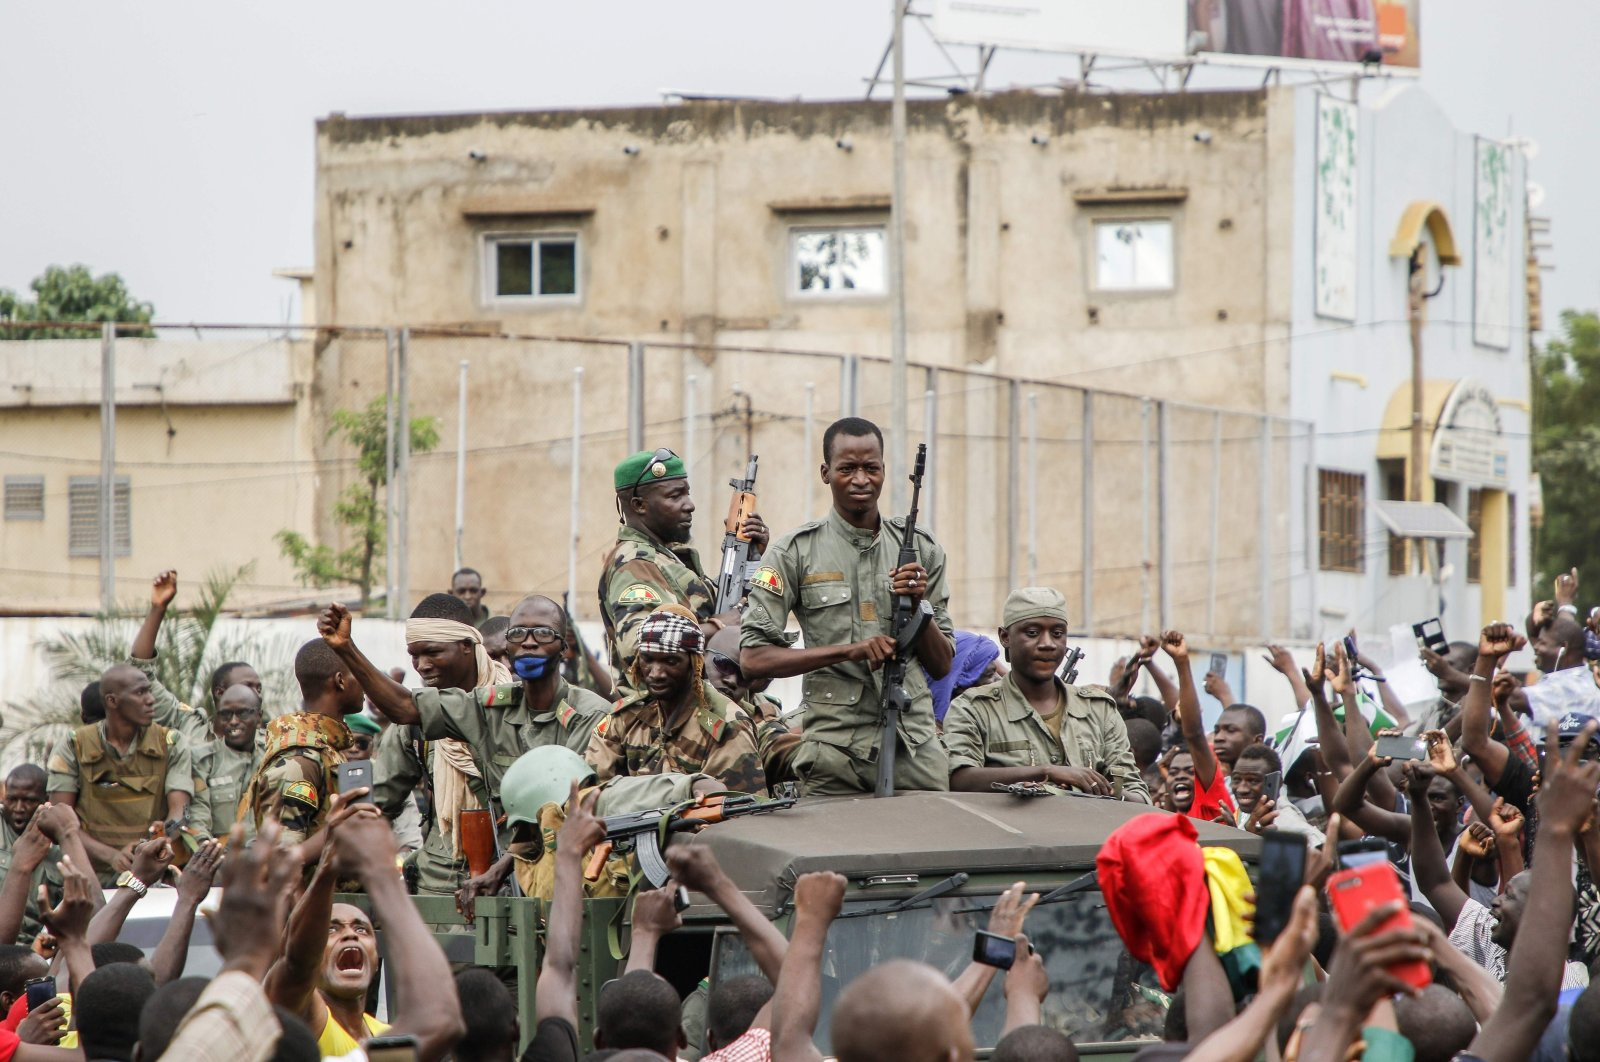 Armed members of the FAMA (Malian Armed Forces) are celebrated by the population as they parade at Independence Square in Bamako after rebel troops seized Malian President Ibrahim Boubacar Keita and Prime Minister Boubou Cisse in a dramatic escalation of a months-long crisis, Bamako, Mali, Aug.18, 2020. (AFP Photo)